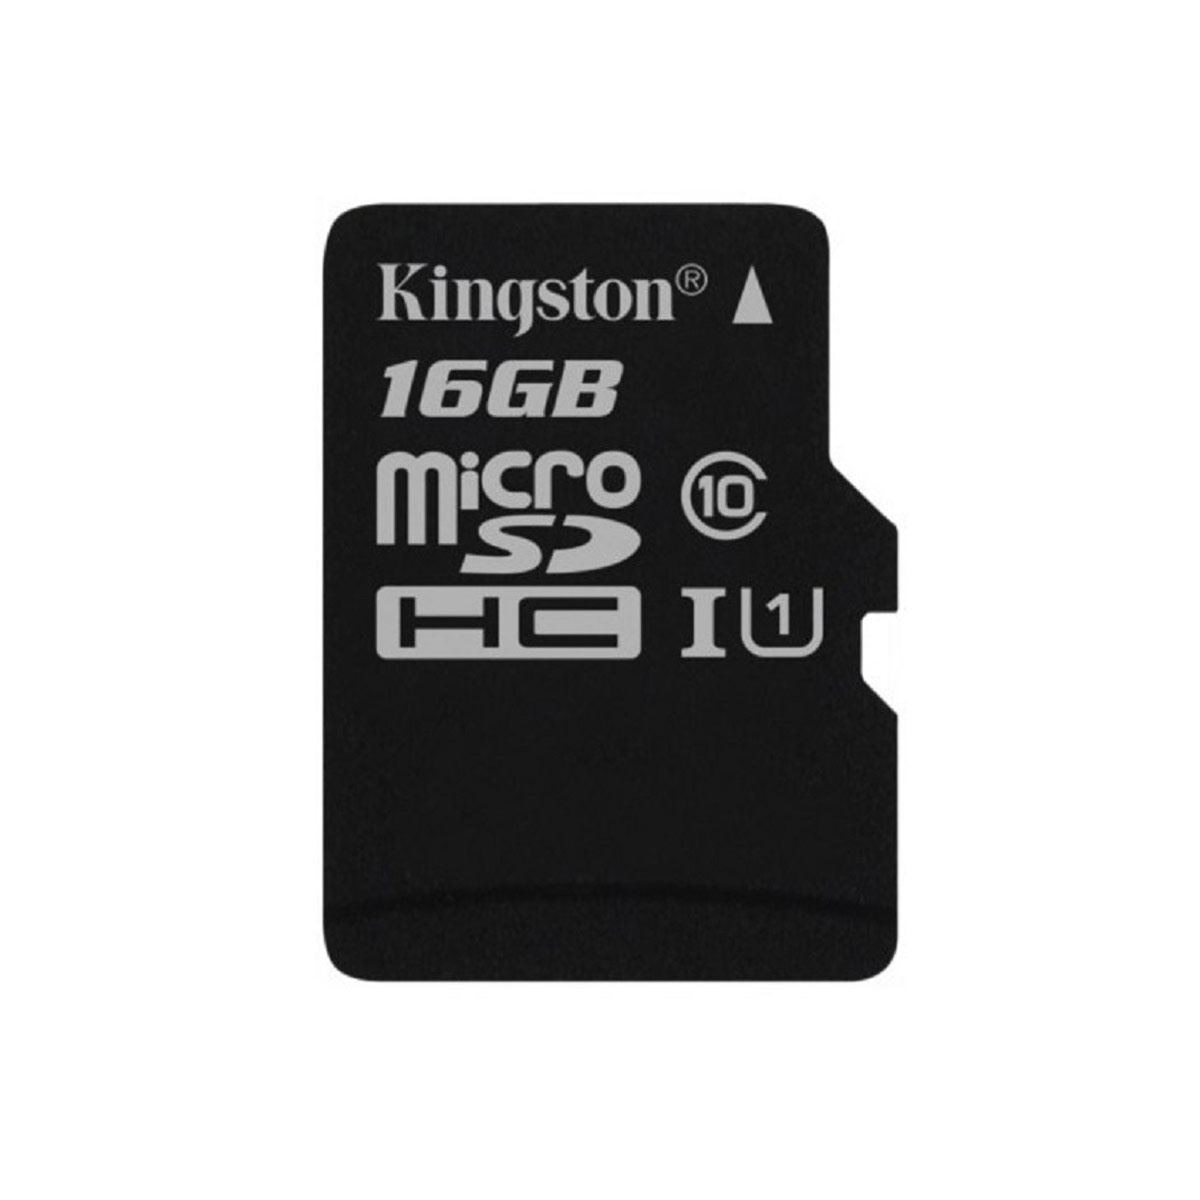 Micro SD Kingston 16GB Canvas CL10